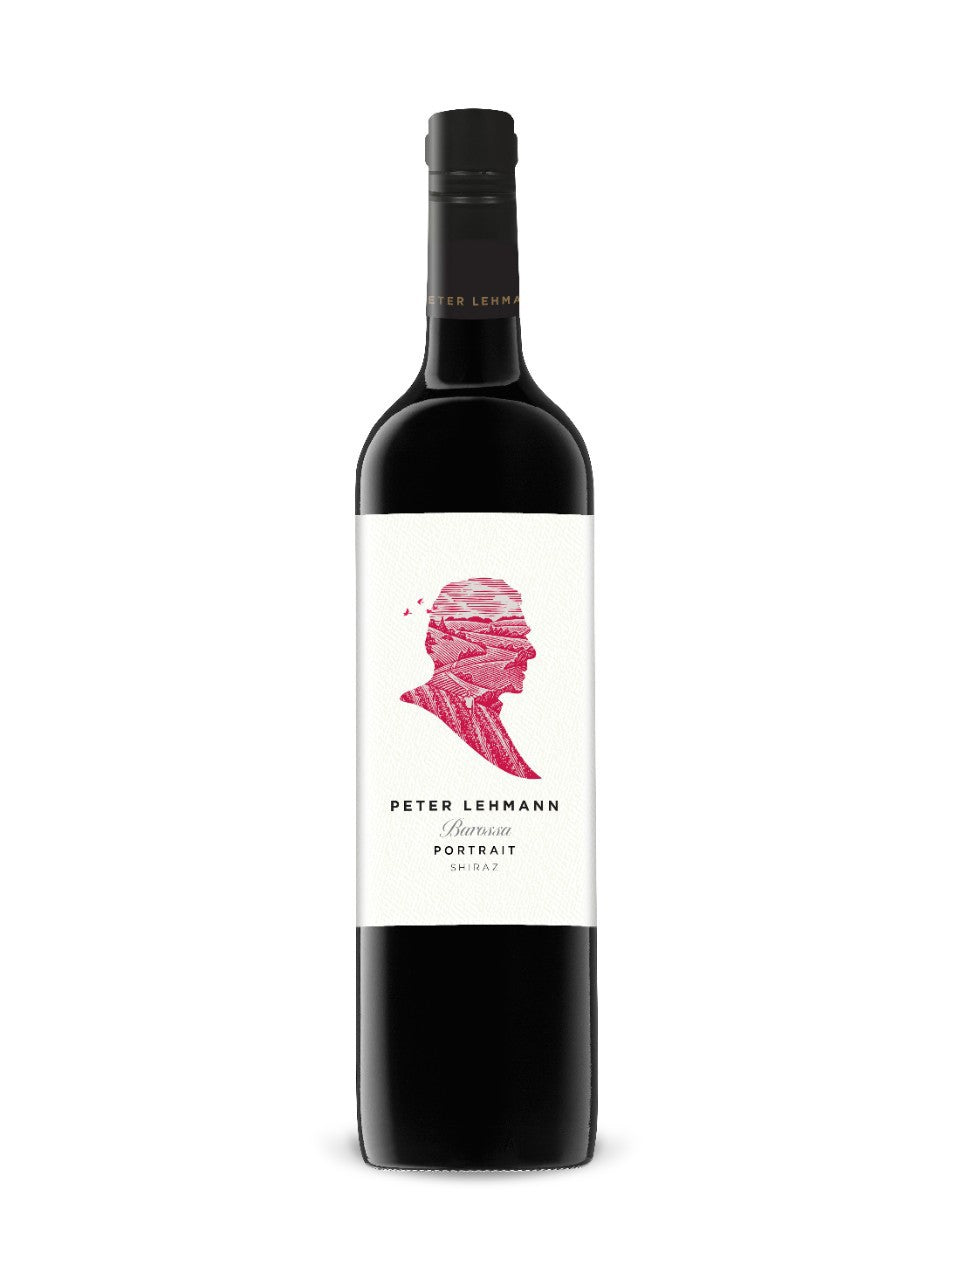 PETER LEHMANN THE BAROSSAN SHIRAZ 750ml